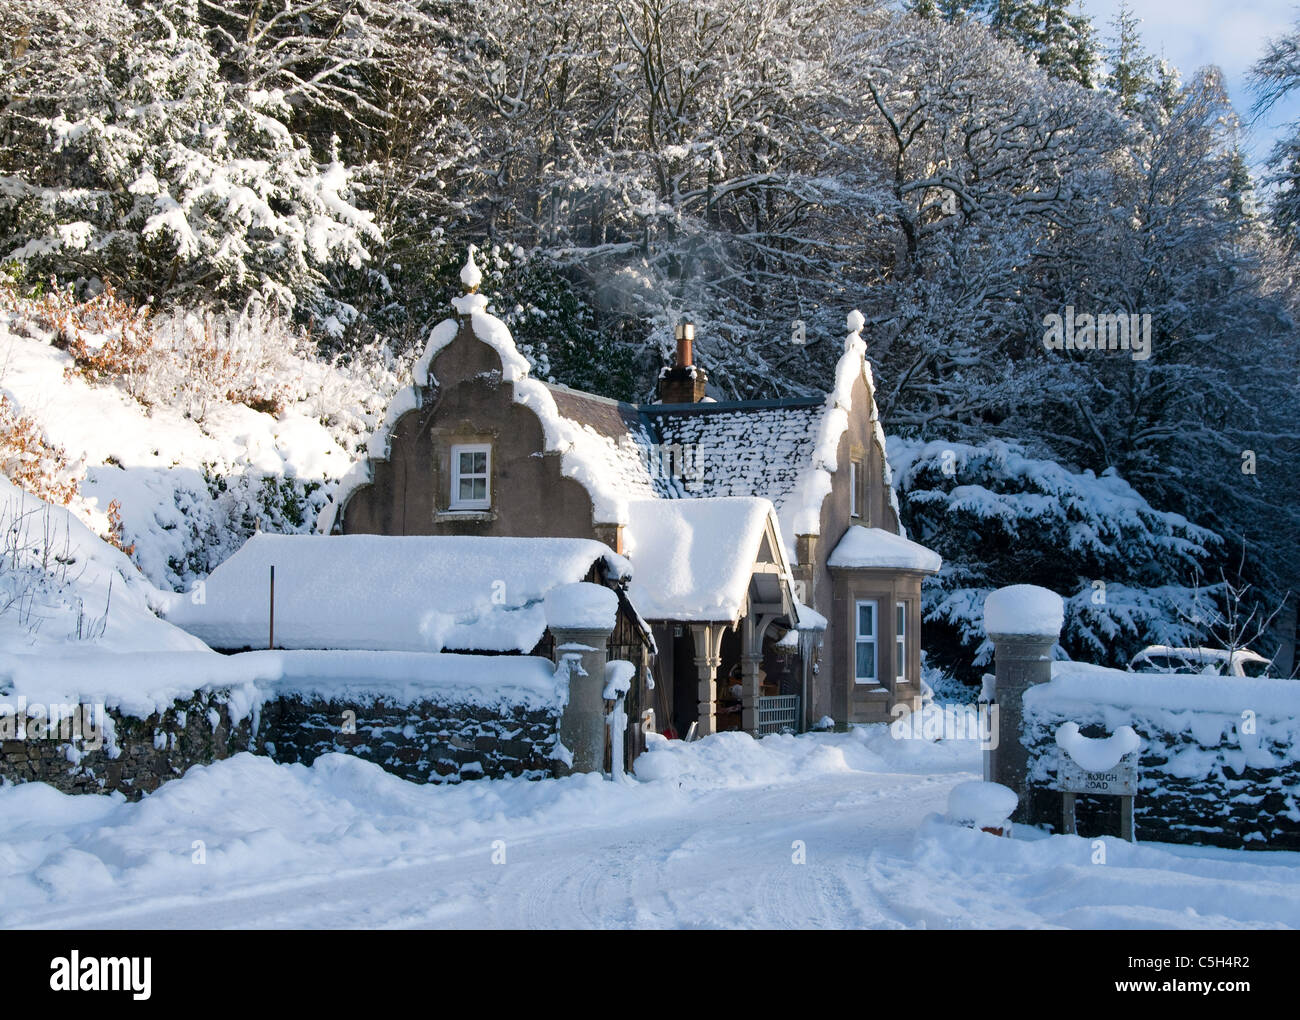 Snow covered lodge at yarrow water near selkirk - Stock Image